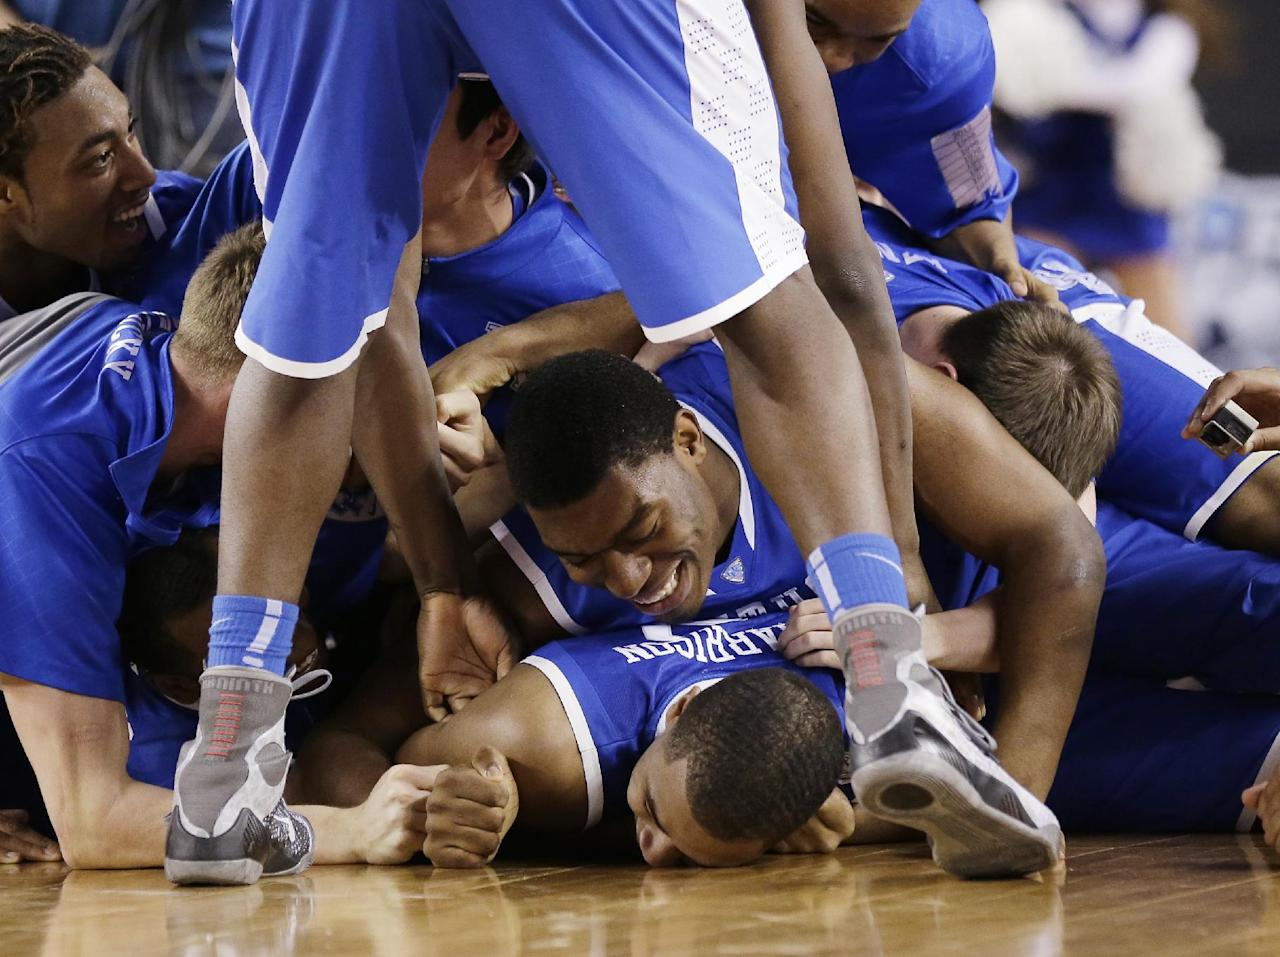 Kentucky players celebrate on the court after their 74-73 victory over Wisconsin in an NCAA Final Four tournament college basketball semifinal game Saturday, April 5, 2014, in Arlington, Texas.(AP Photo/Eric Gay)